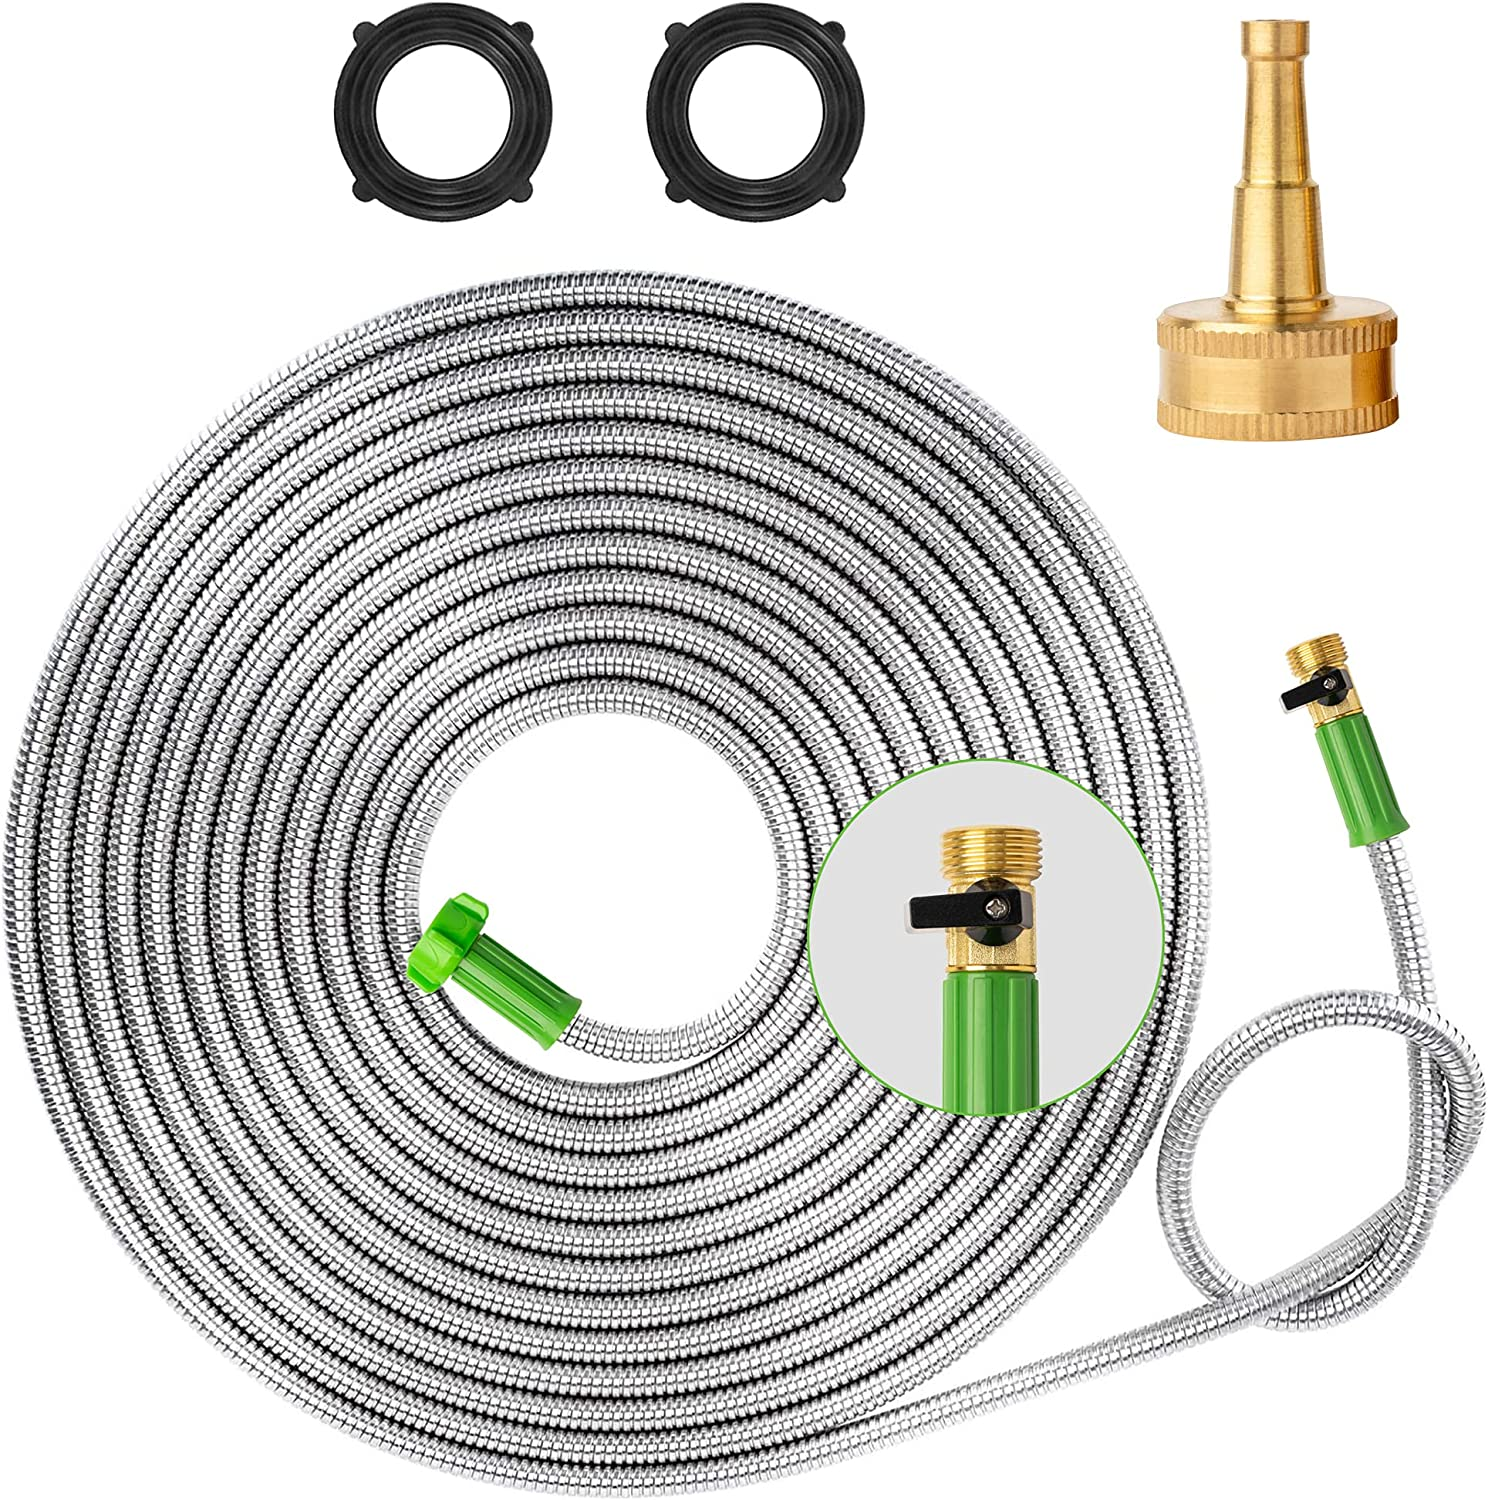 Yanwoo 304 Stainless Steel 15ft Garden Hose with Sprayer Nozzle and ON/OFF Valve, Lightweight, Kink-Free, Heavy Duty Outdoor Hose (15ft)